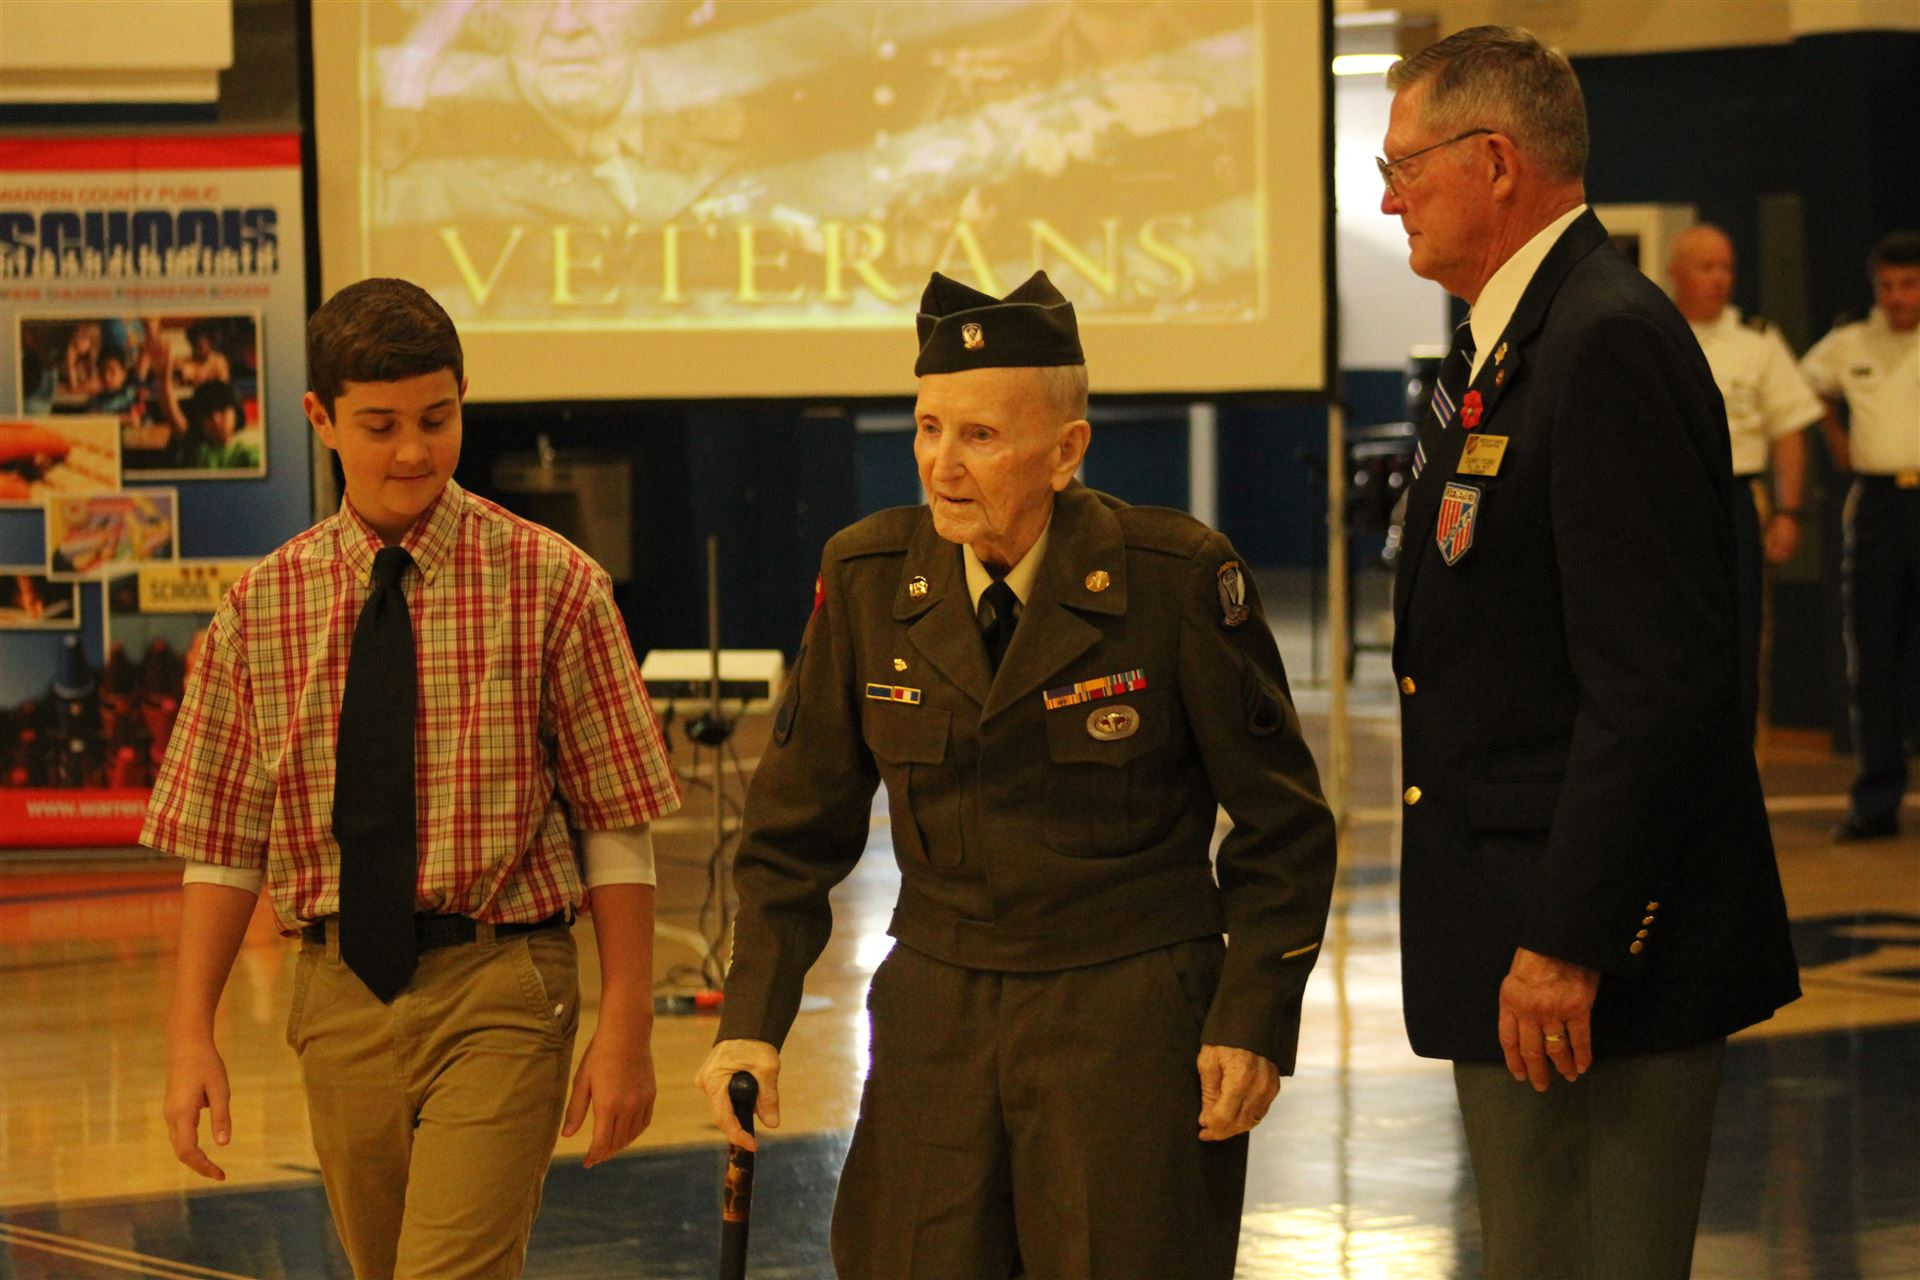 Veterans Day ceremony at WCHS